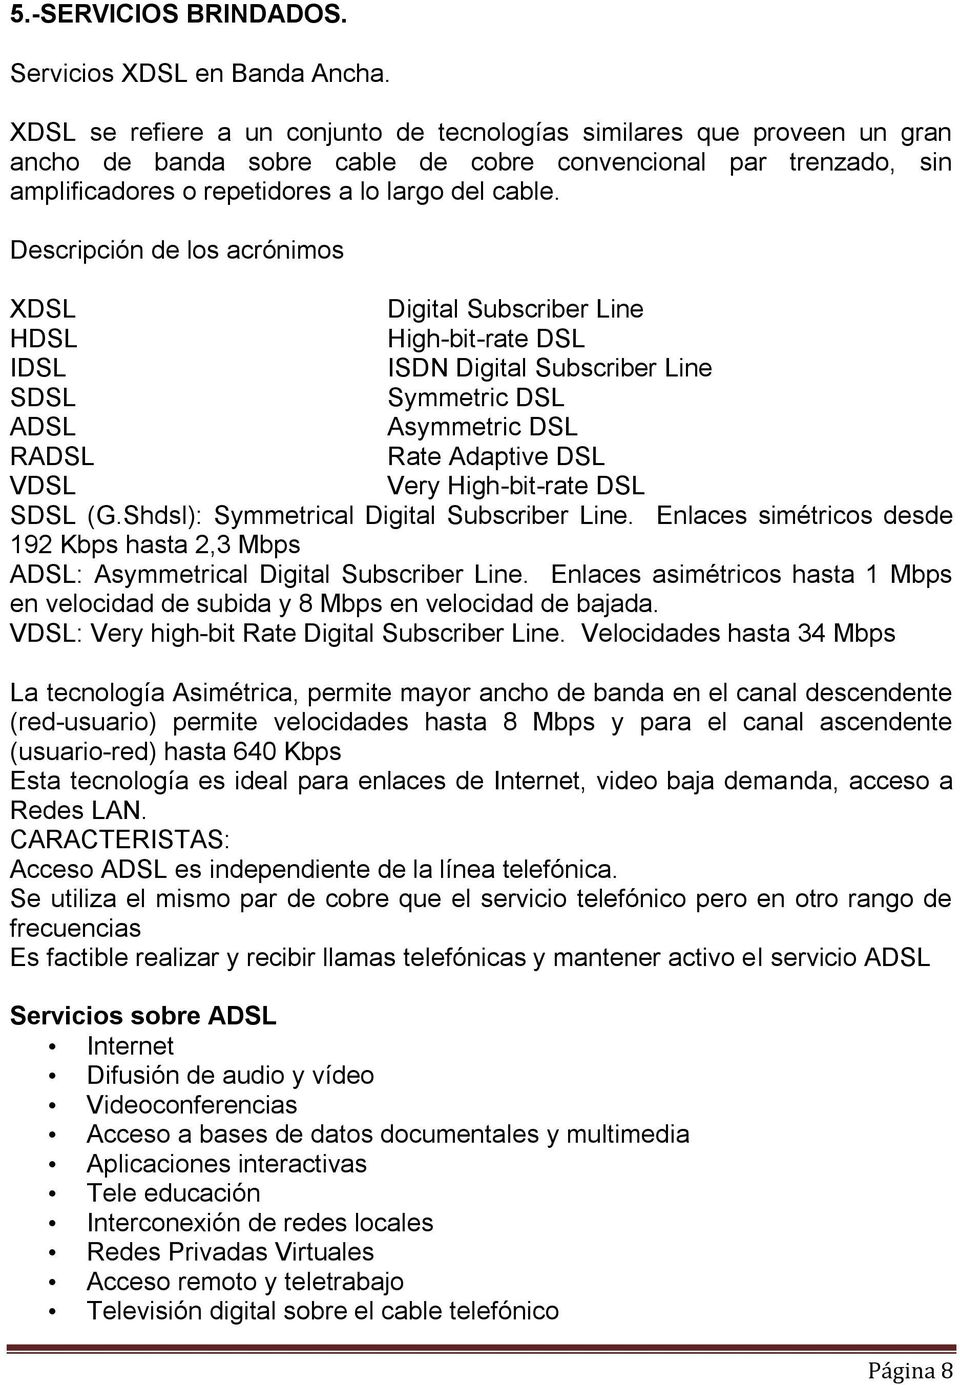 Descripción de los acrónimos XDSL Digital Subscriber Line HDSL High-bit-rate DSL IDSL ISDN Digital Subscriber Line SDSL Symmetric DSL ADSL Asymmetric DSL RADSL Rate Adaptive DSL VDSL Very